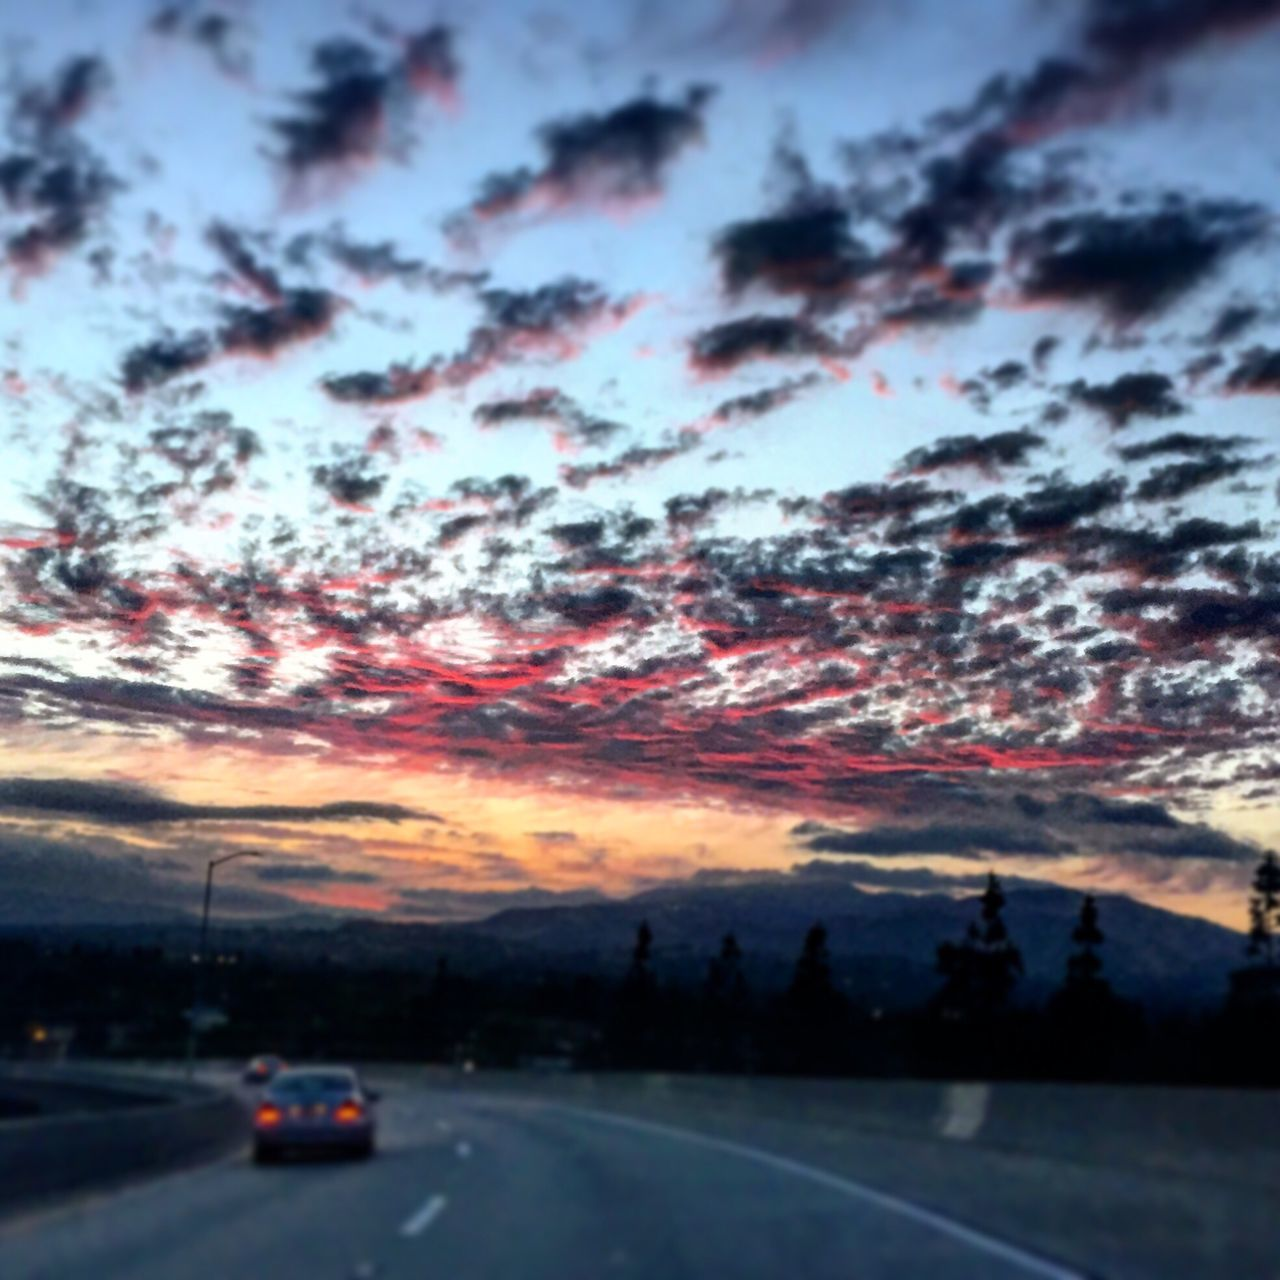 sunset, car, transportation, dramatic sky, cloud - sky, sky, scenics, beauty in nature, nature, no people, tranquil scene, road, tranquility, land vehicle, tree, outdoors, mountain, day